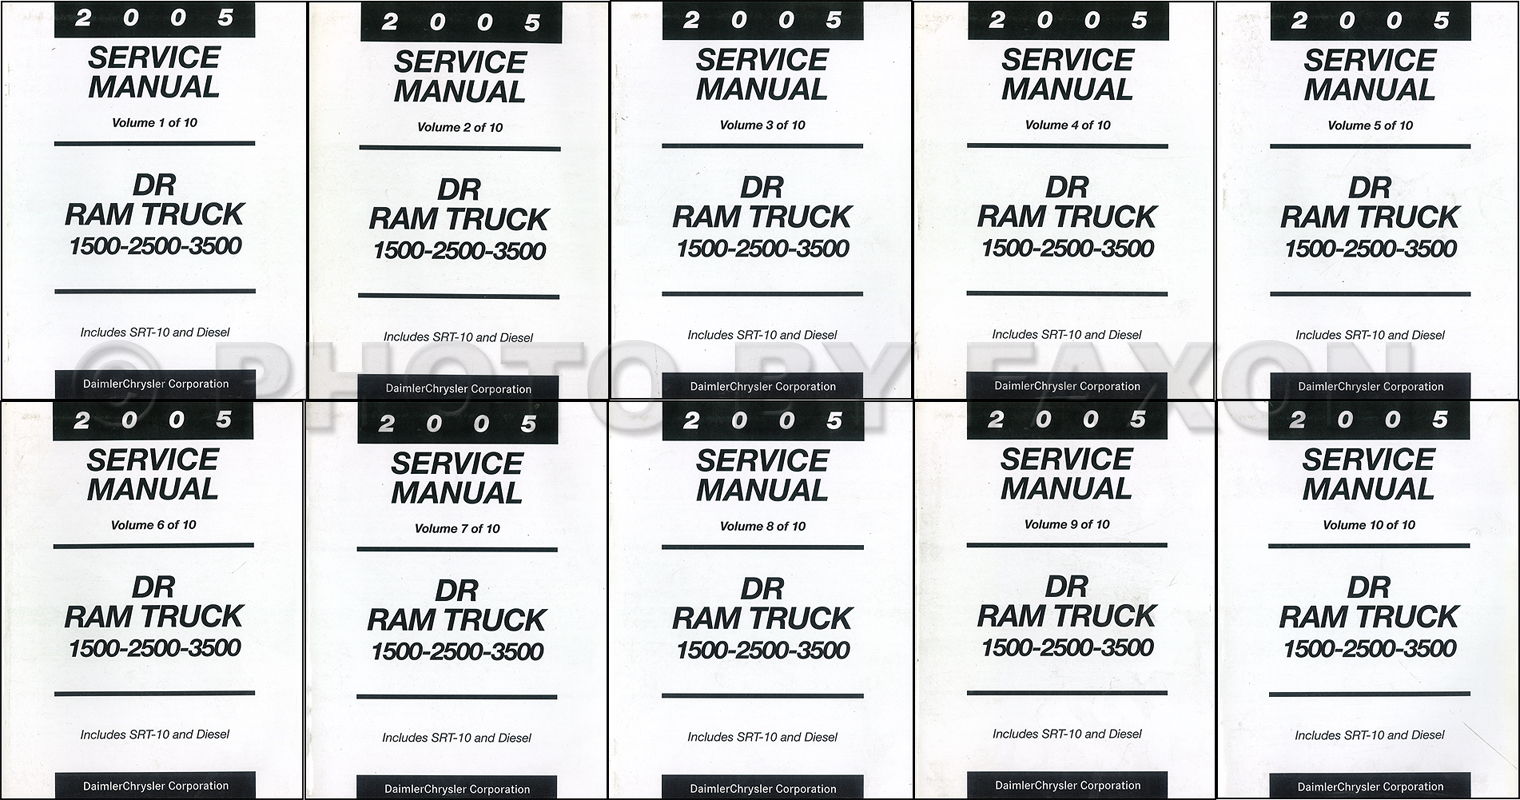 Wiring Diagram Dodge Ram Ignition Switch on dodge ram 1500 fuel system diagram, dodge dakota stereo wiring diagram, dodge ram 1500 distributor cap diagram, dodge ram 1500 suspension diagram, 1997 dodge ram ignition wiring diagram, dodge dakota electrical schematic, dodge ram 1500 fuel tank diagram, dodge ram 1500 horn diagram, 1977 dodge ignition wiring diagram, dodge wiring harness diagram, dodge ram 1500 timing diagram, dodge ram 1500 fuse box diagram, dodge ram 3500 ignition wiring diagram, dodge ram 1500 ignition coil, dodge ram 1500 electrical diagrams, dodge intrepid ignition wiring diagram, dodge dakota wiring schematic, dodge ram firing order diagram, dodge ram 1500 cooling system diagram, dodge ram 1500 spark plug diagram,